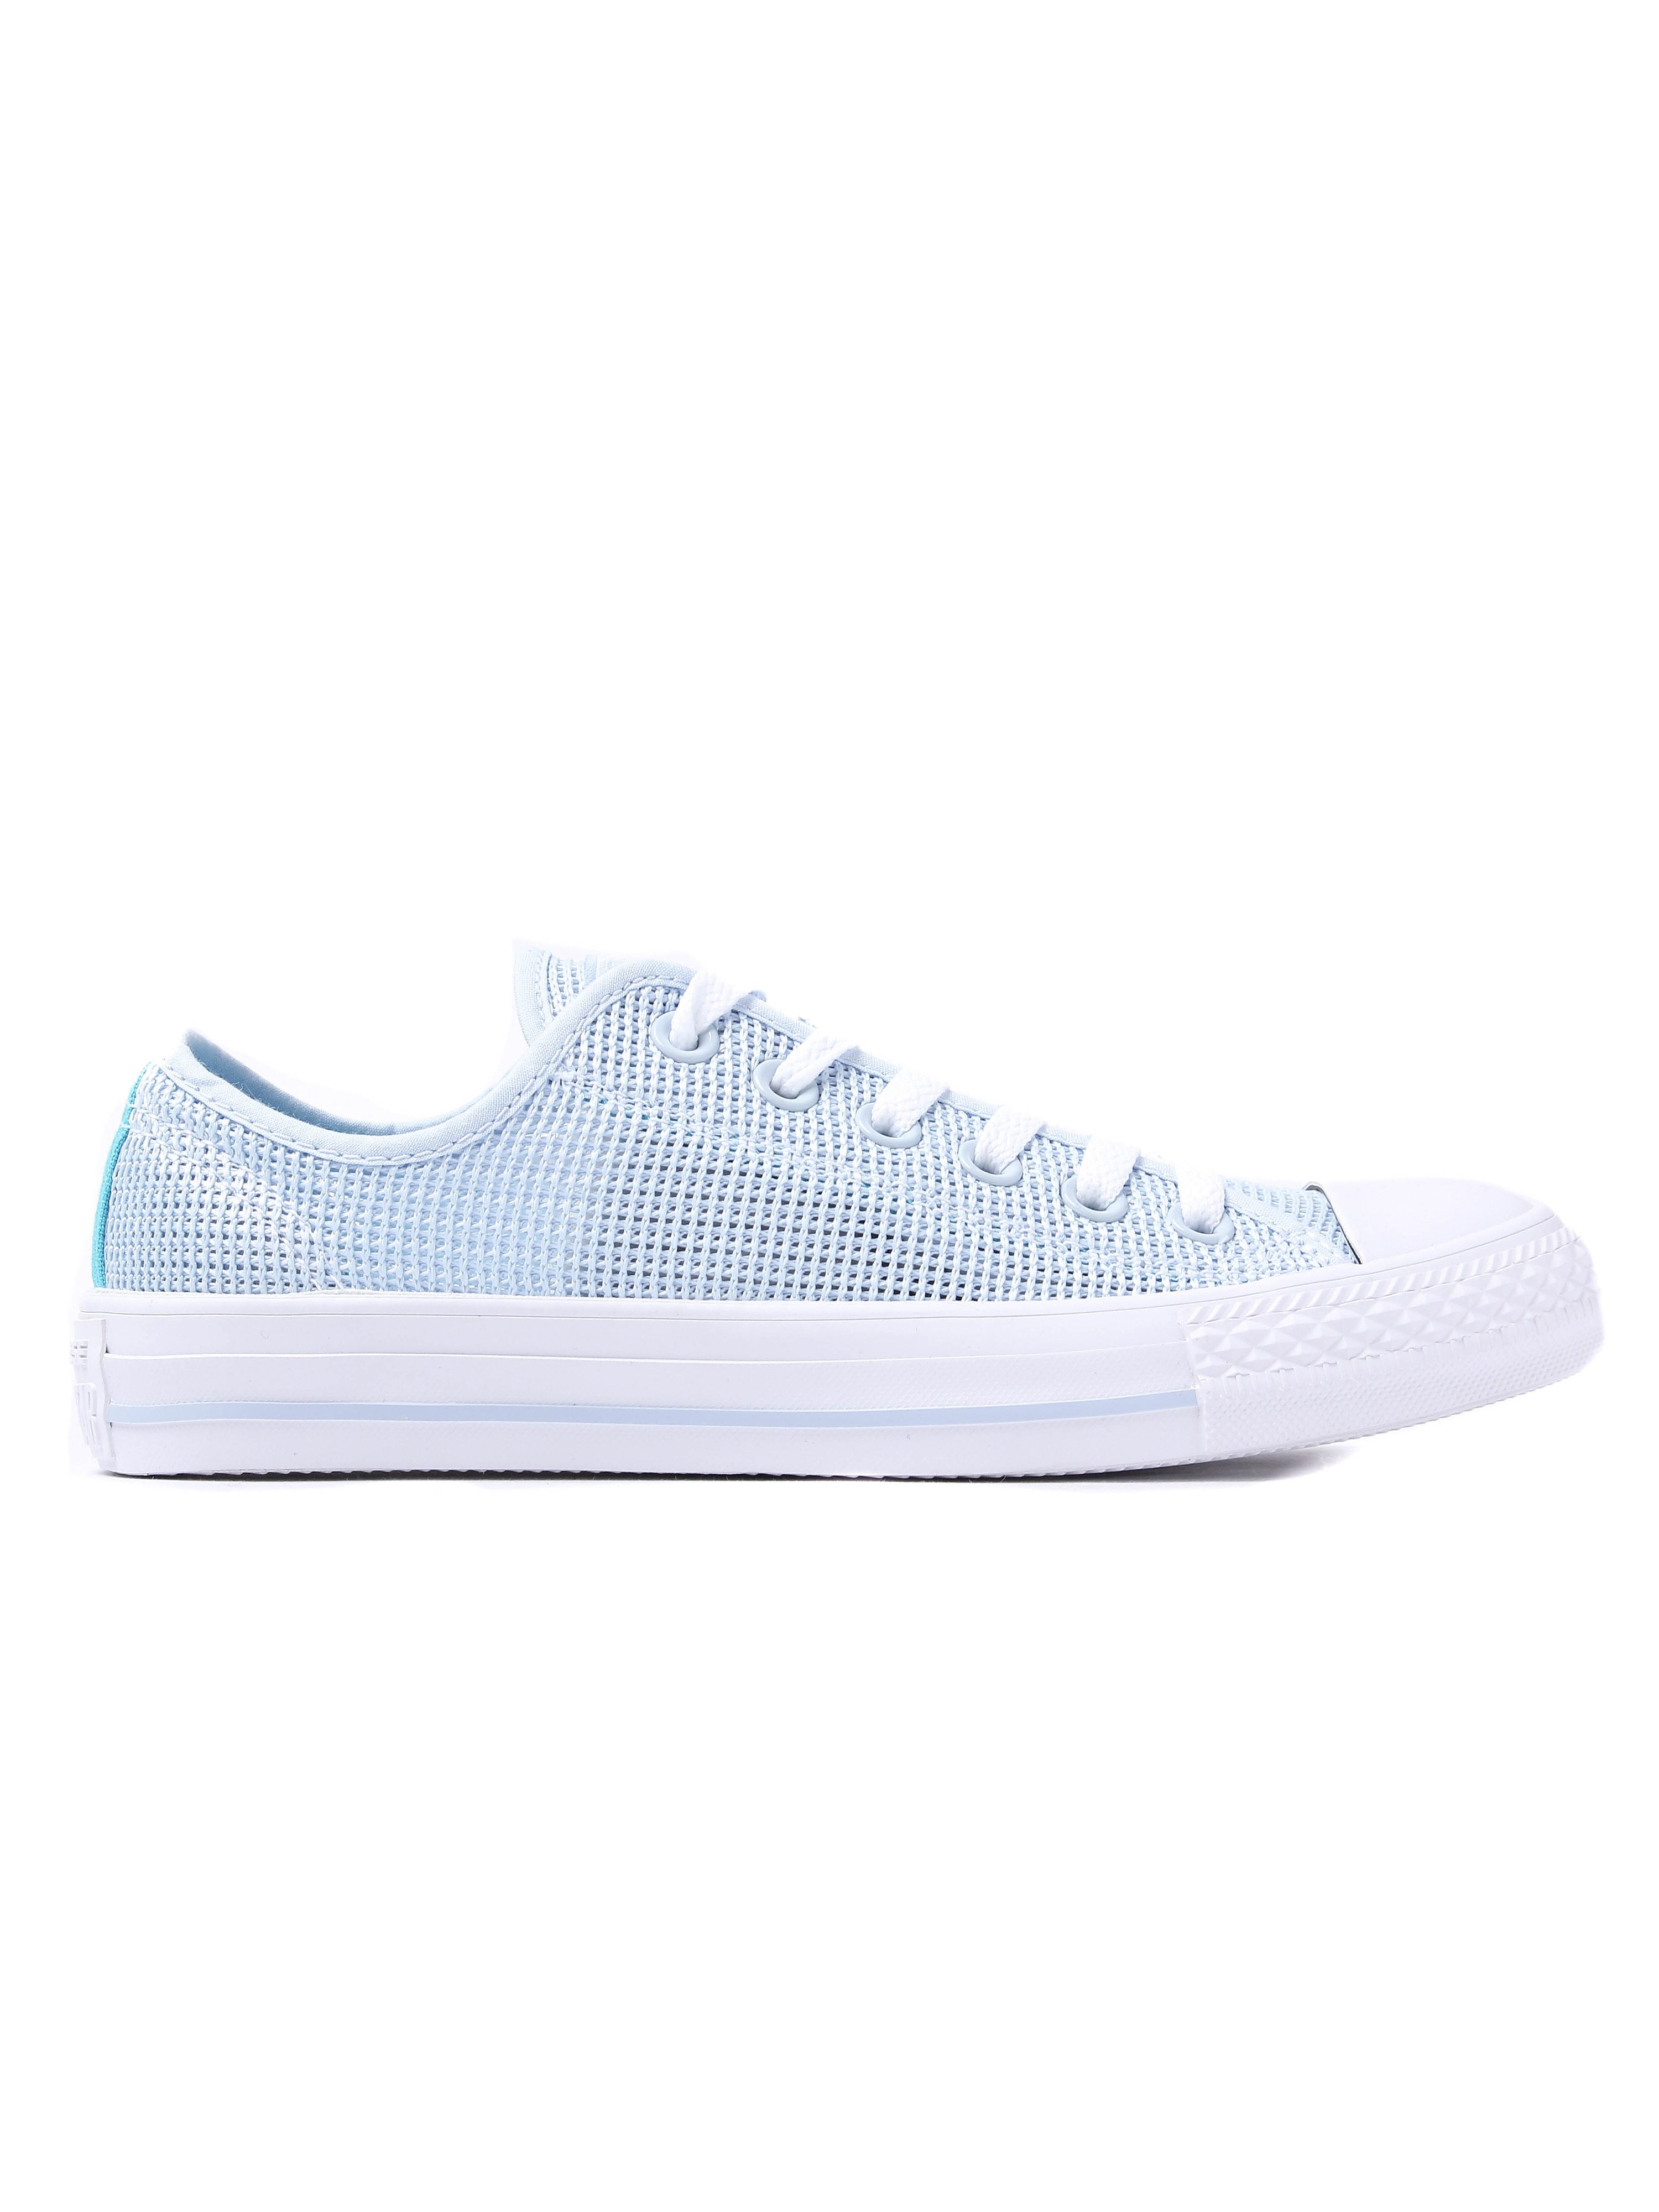 Converse Women's Chuck Taylor All Star Trainers - Porpoise/Fresh Cyan